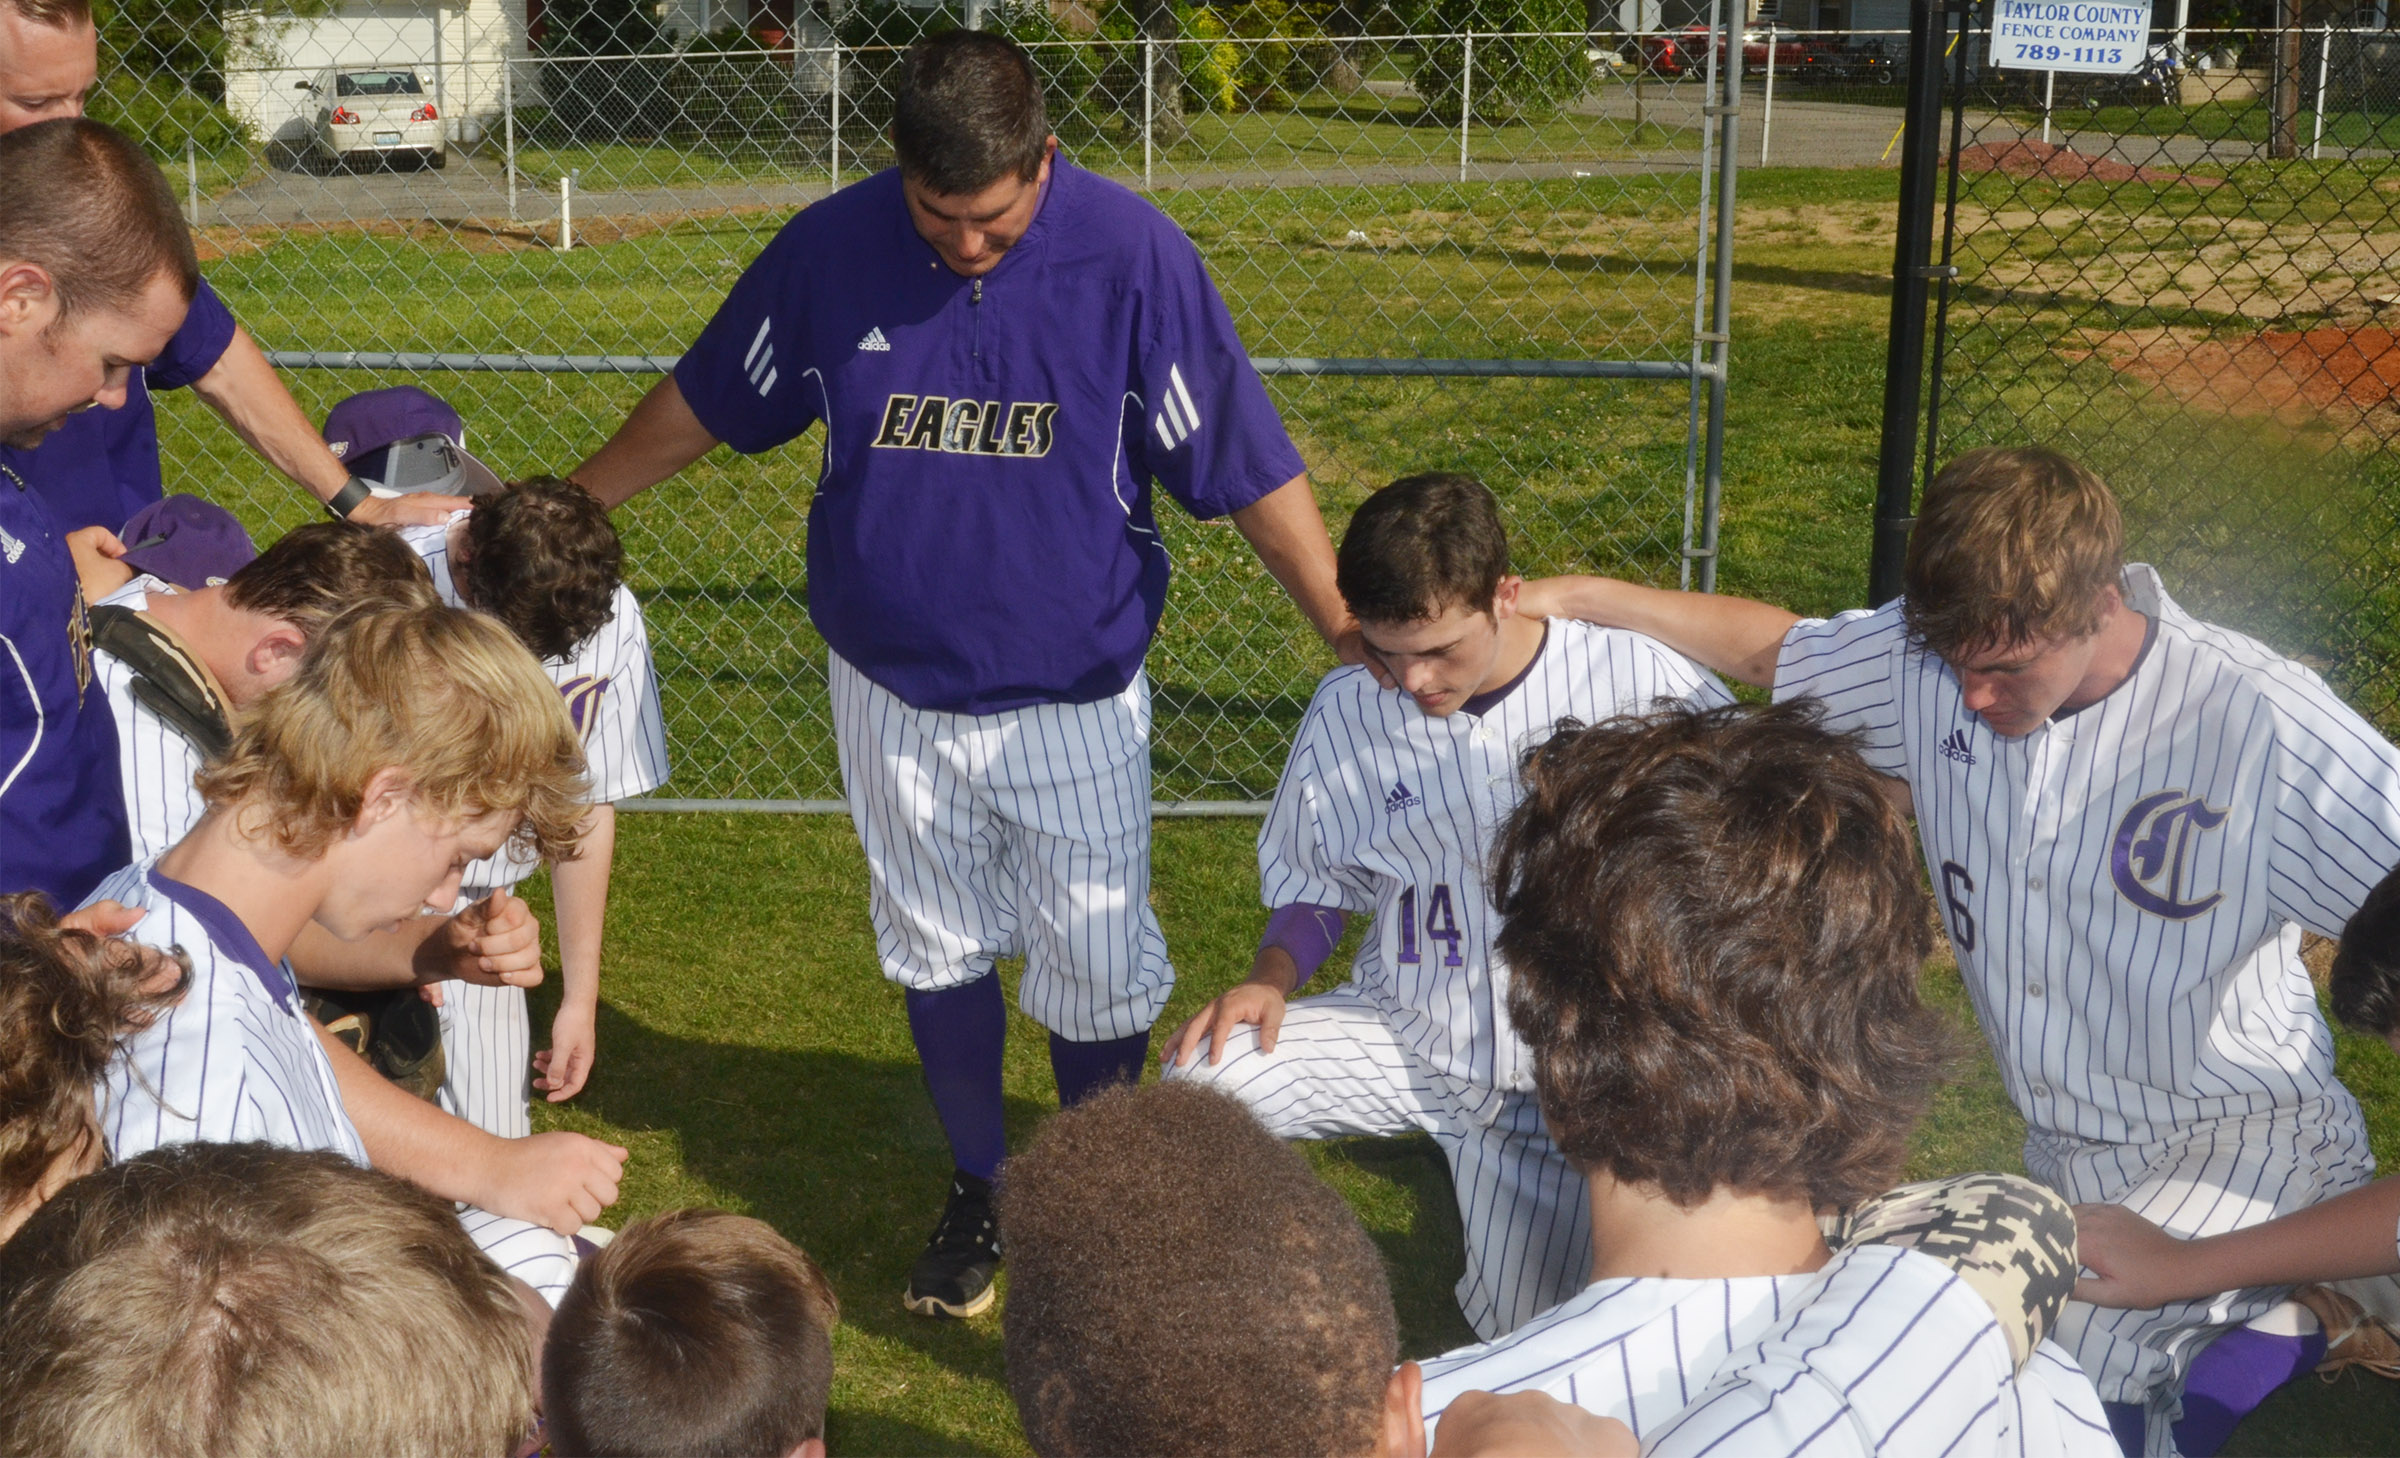 CHS head baseball coach Kirby Smith leads his team in prayer before taking on Washington County.